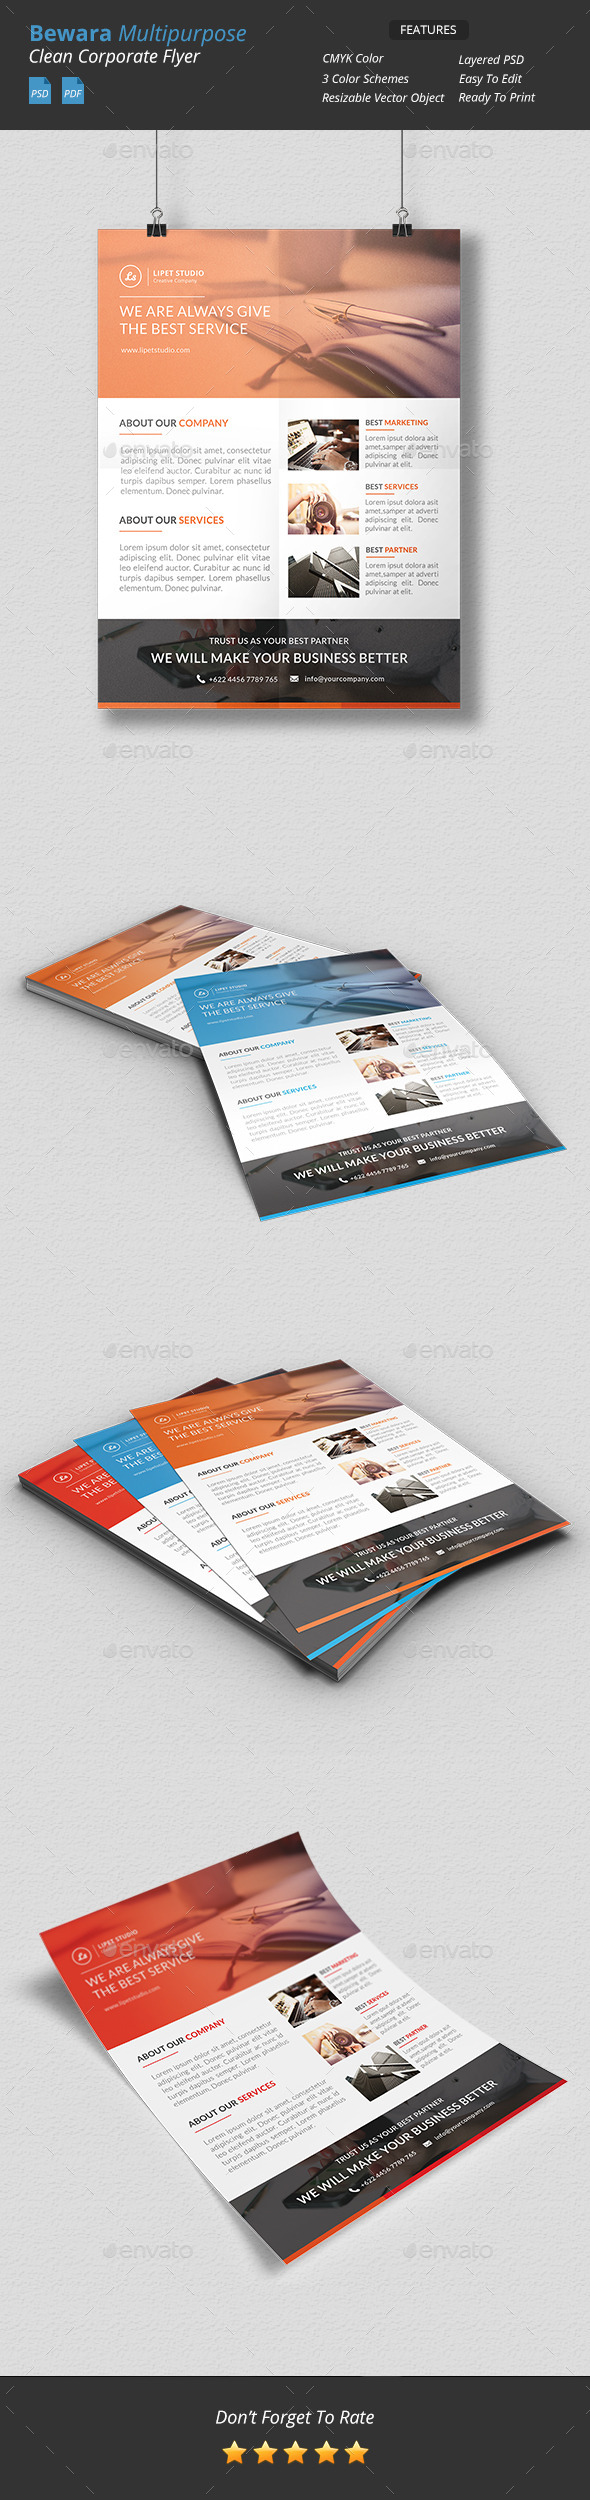 GraphicRiver Bewara Clean Multipurpose Corporate Flyer 9725872